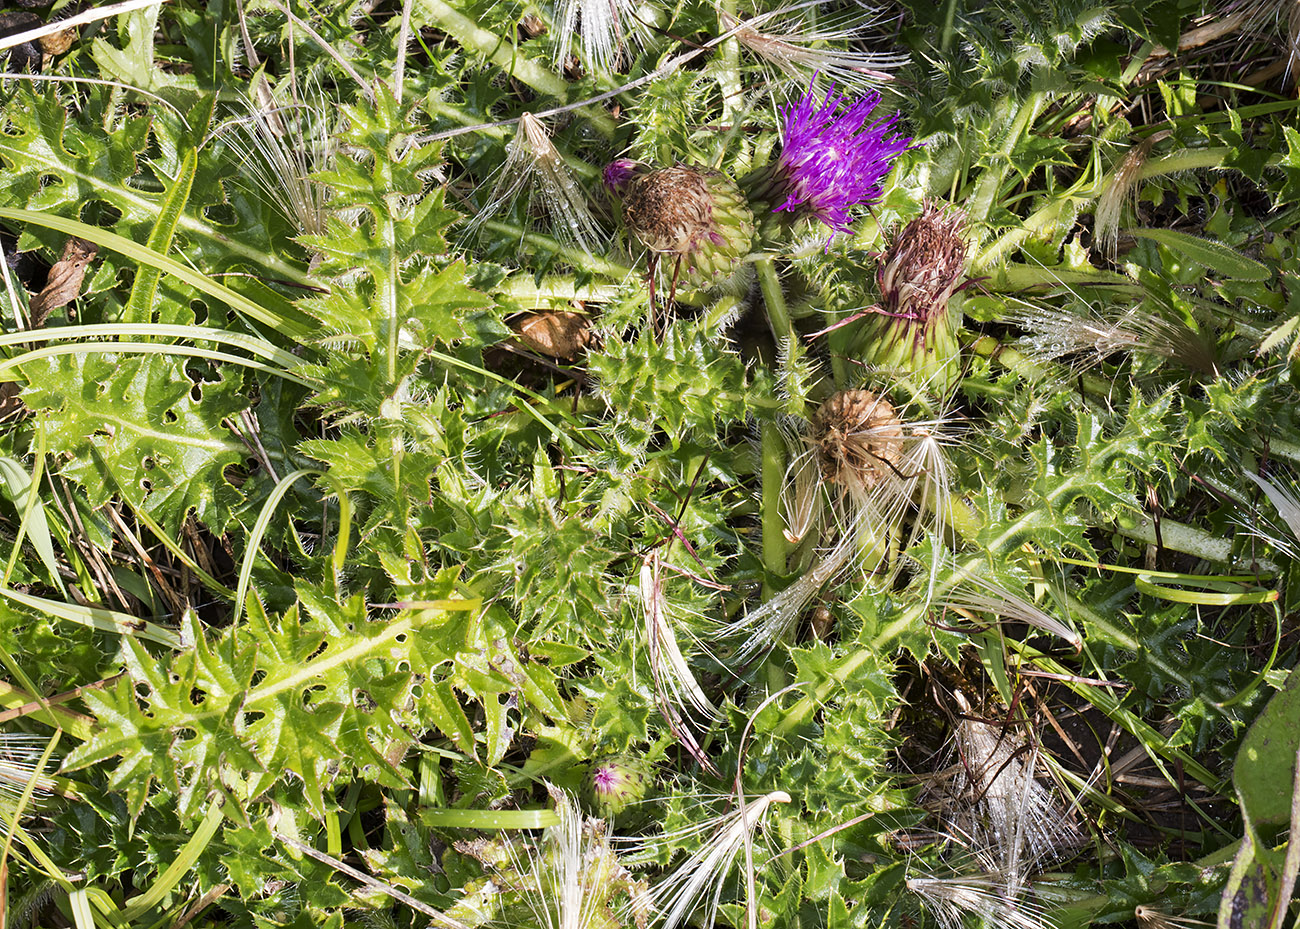 Dwarf Thistle, Cirsium acaule.  Valley sides near Downe, 23 August 2014.